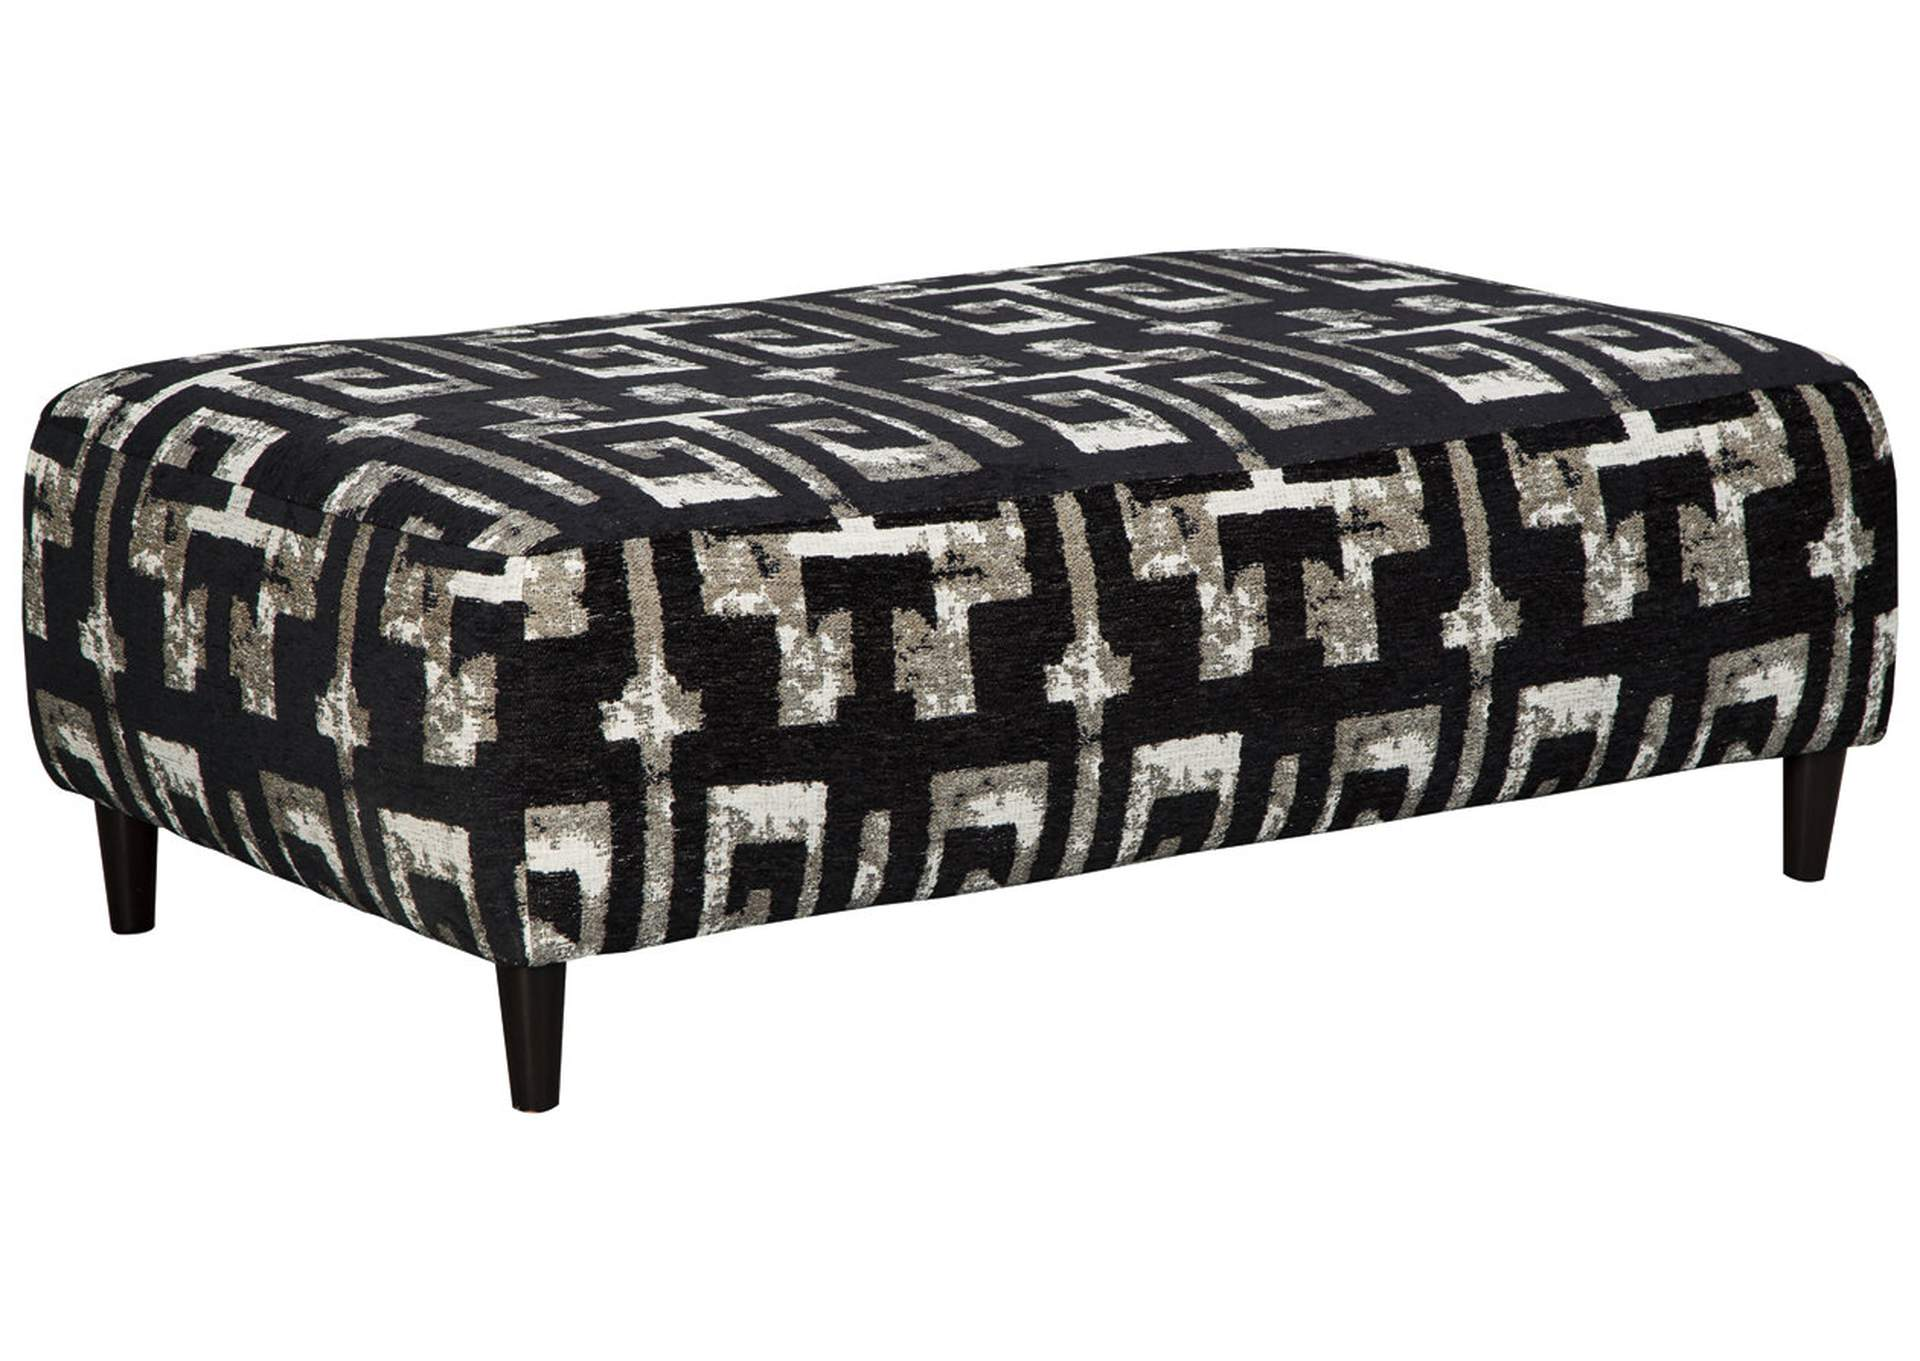 Ravenstone Flint Oversized Accent Ottoman,Signature Design By Ashley